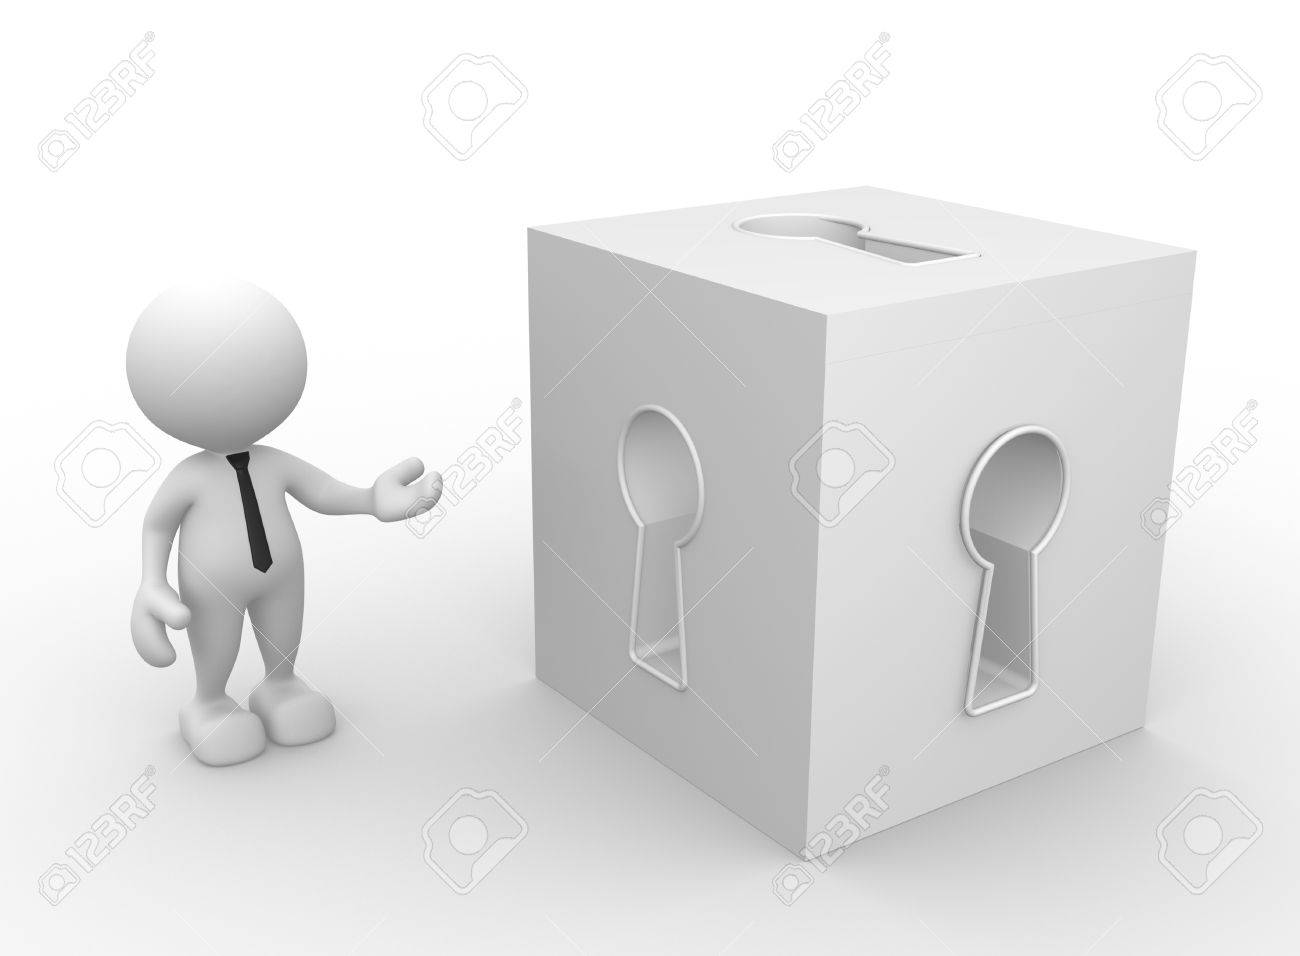 3d people - man, person with a cube and keyhole. Stock Photo - 17433783